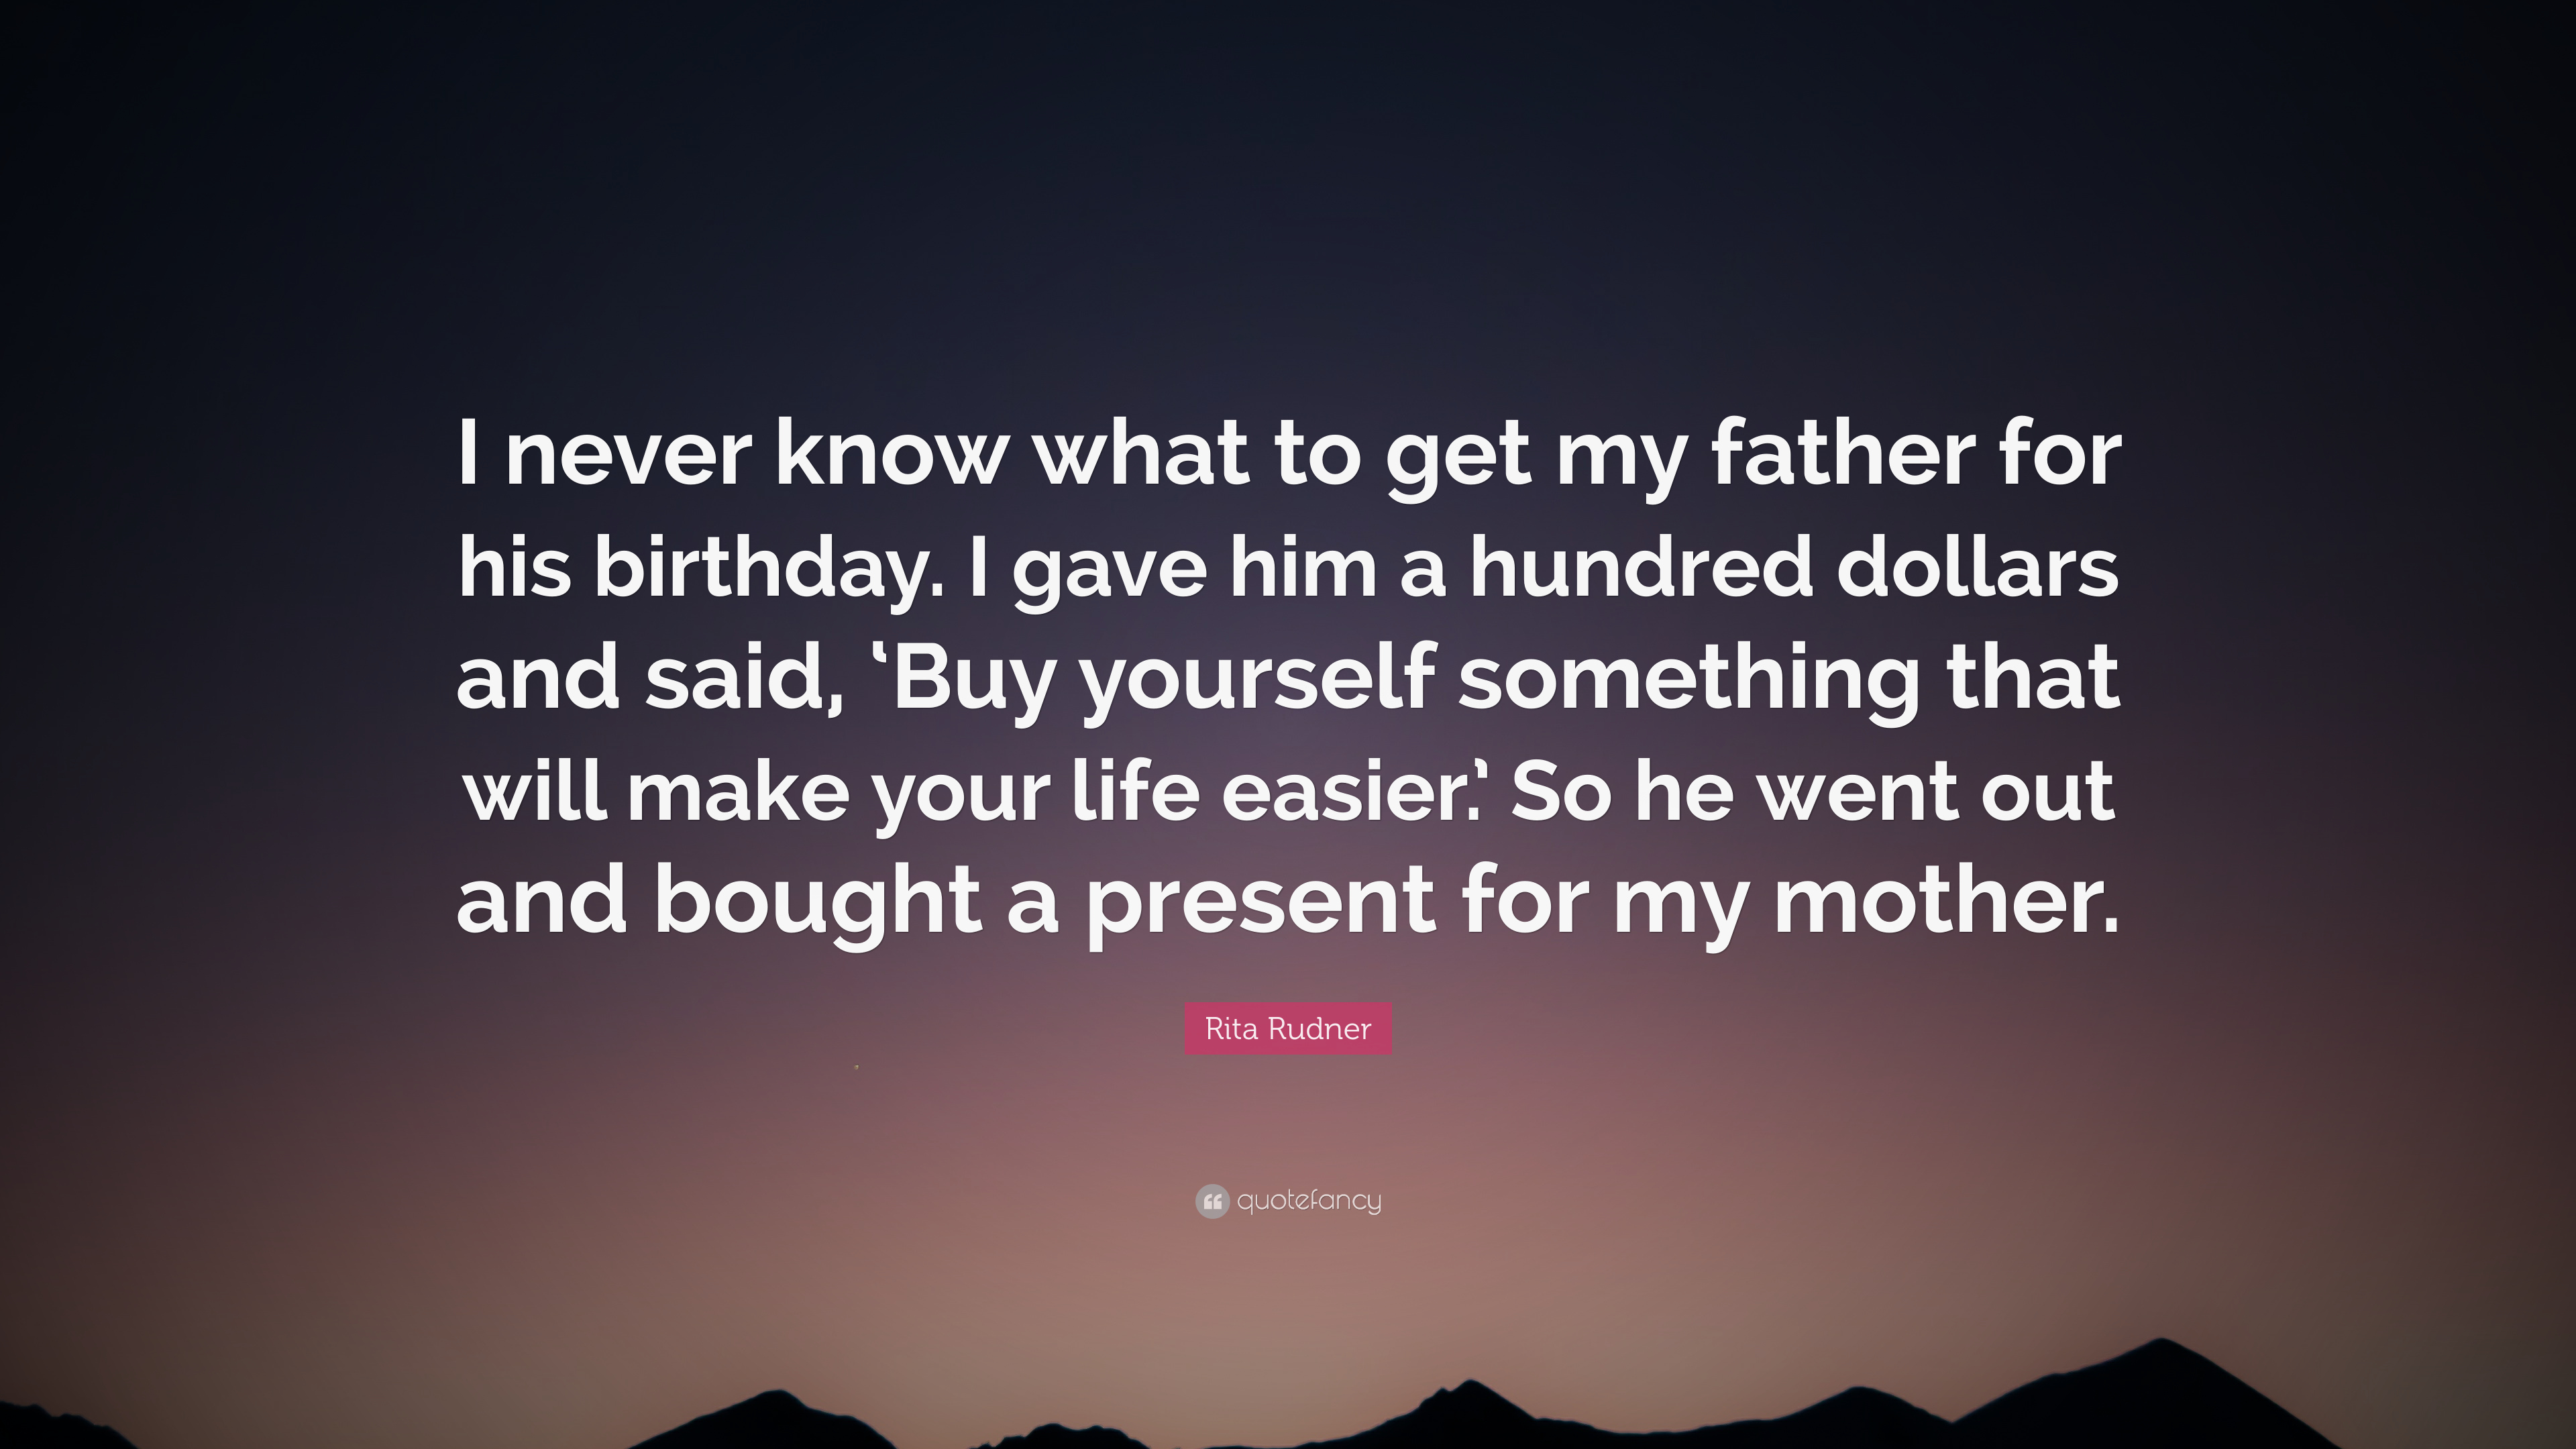 Rita Rudner Quote I Never Know What To Get My Father For His Birthday